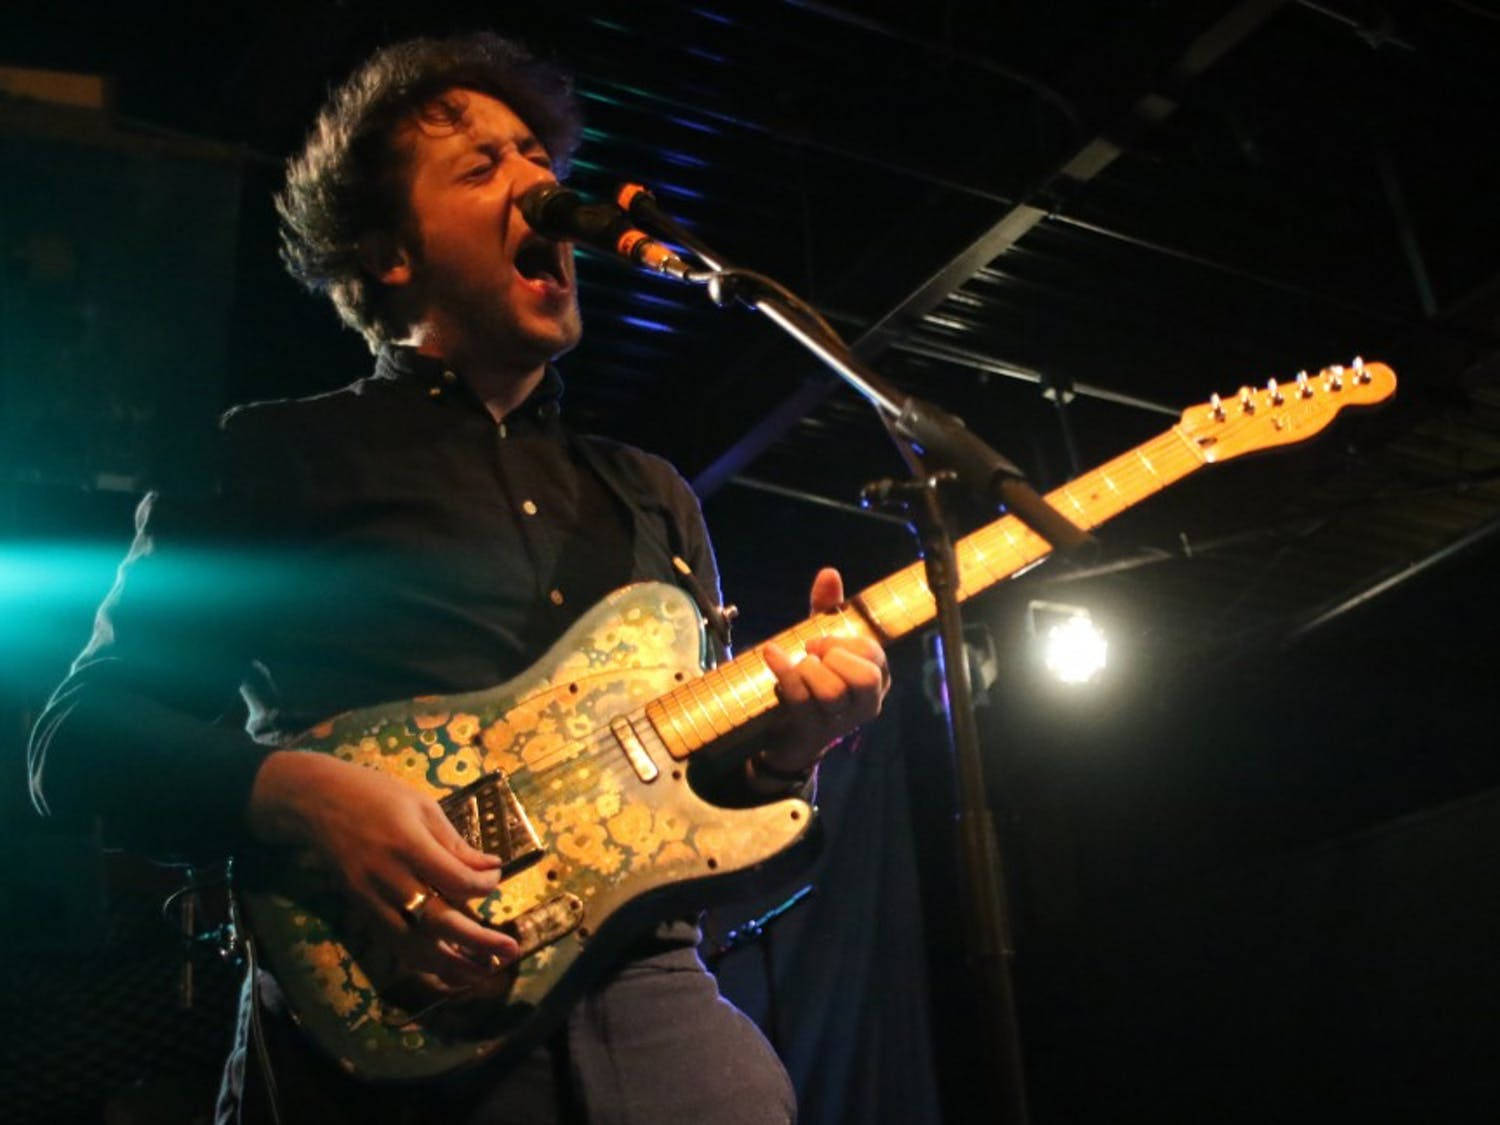 Matthew Murphy, lead singer of The Wombats, performed at Cat's Cradle on Monday night.